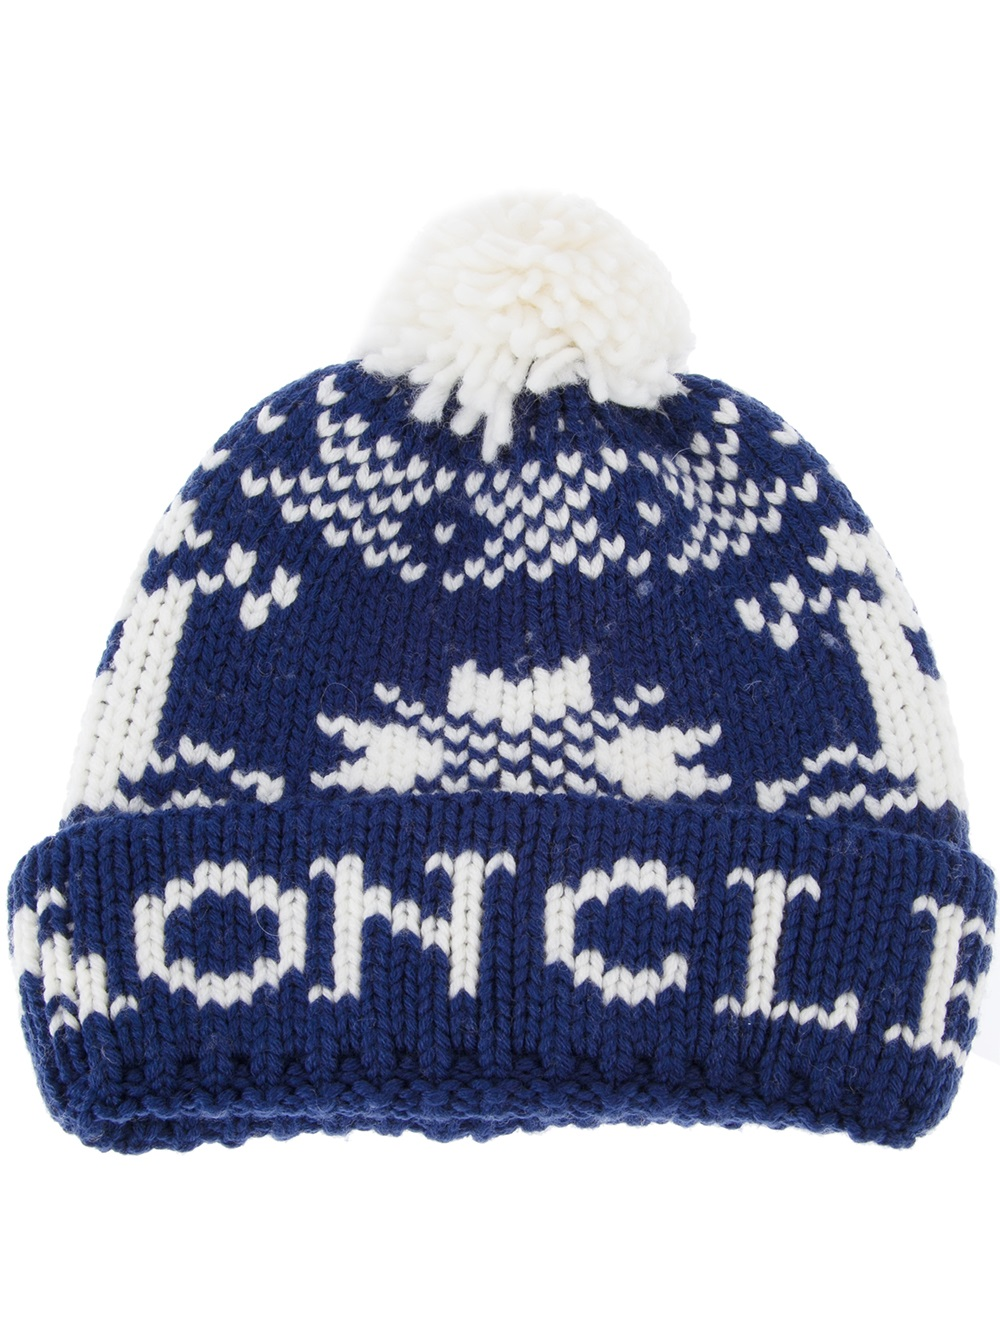 ad89f9ff651 ... on wholesale b7d32 54396 Moncler Fair Isle Beanie Hat in Blue for Men -  Lyst ...